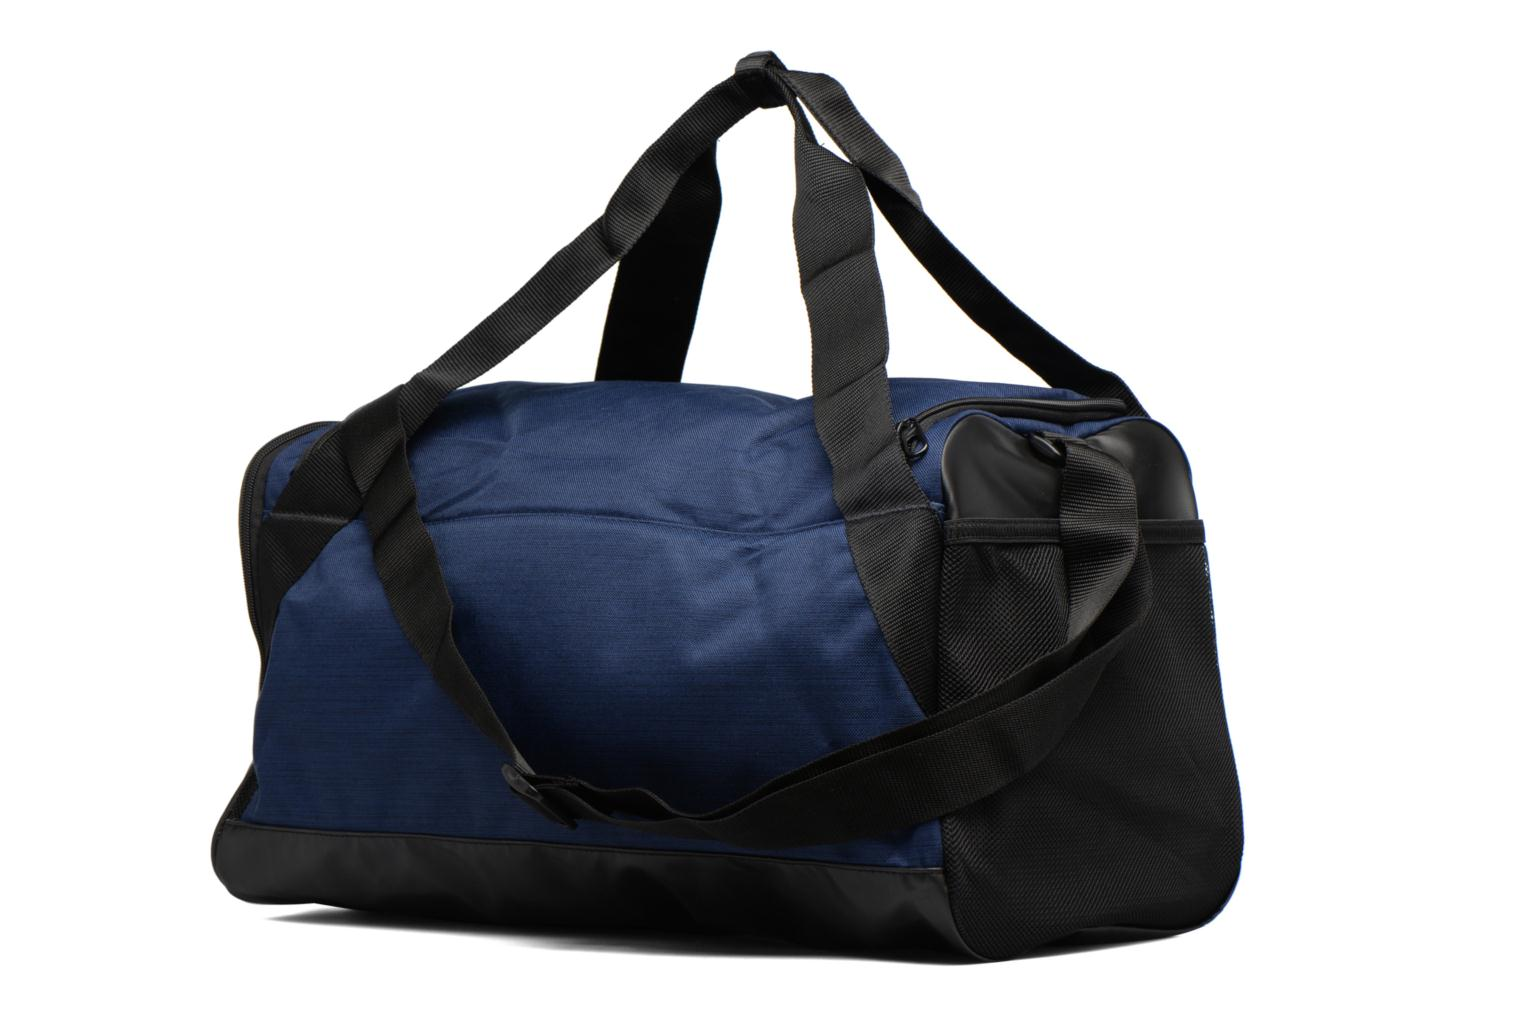 Nike Brasilia Training Duffel Bag S Midnight navyBlackWhite